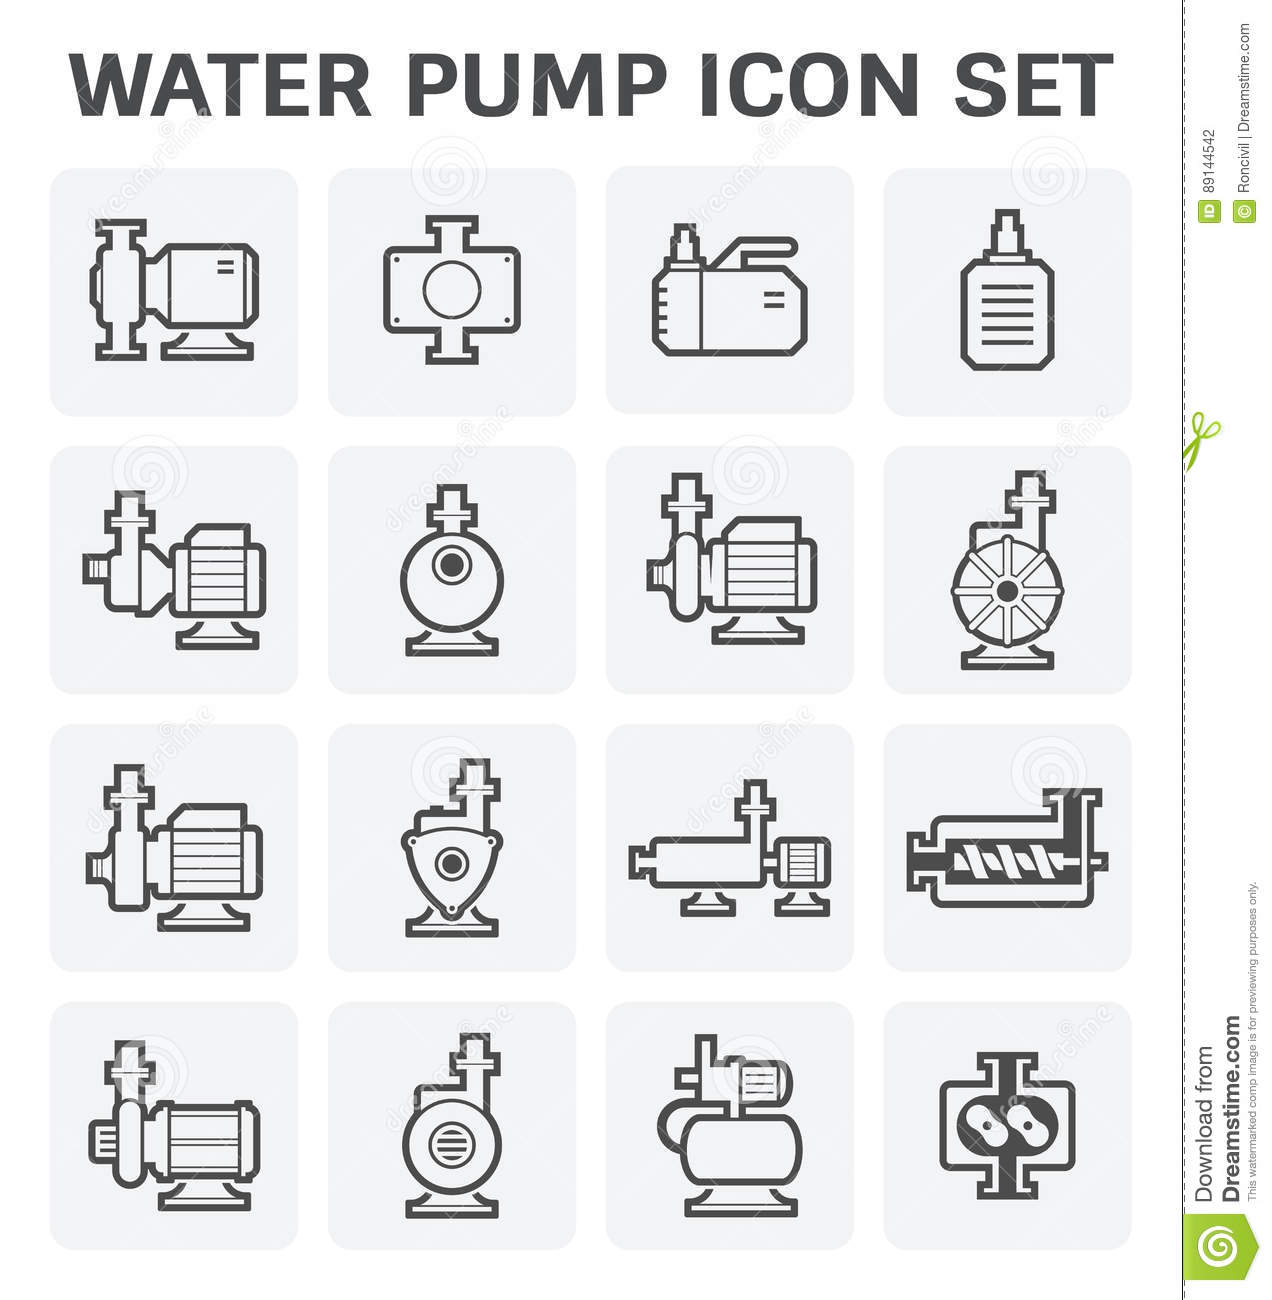 Water Pump Icon Stock Vector Illustration Of Equipment